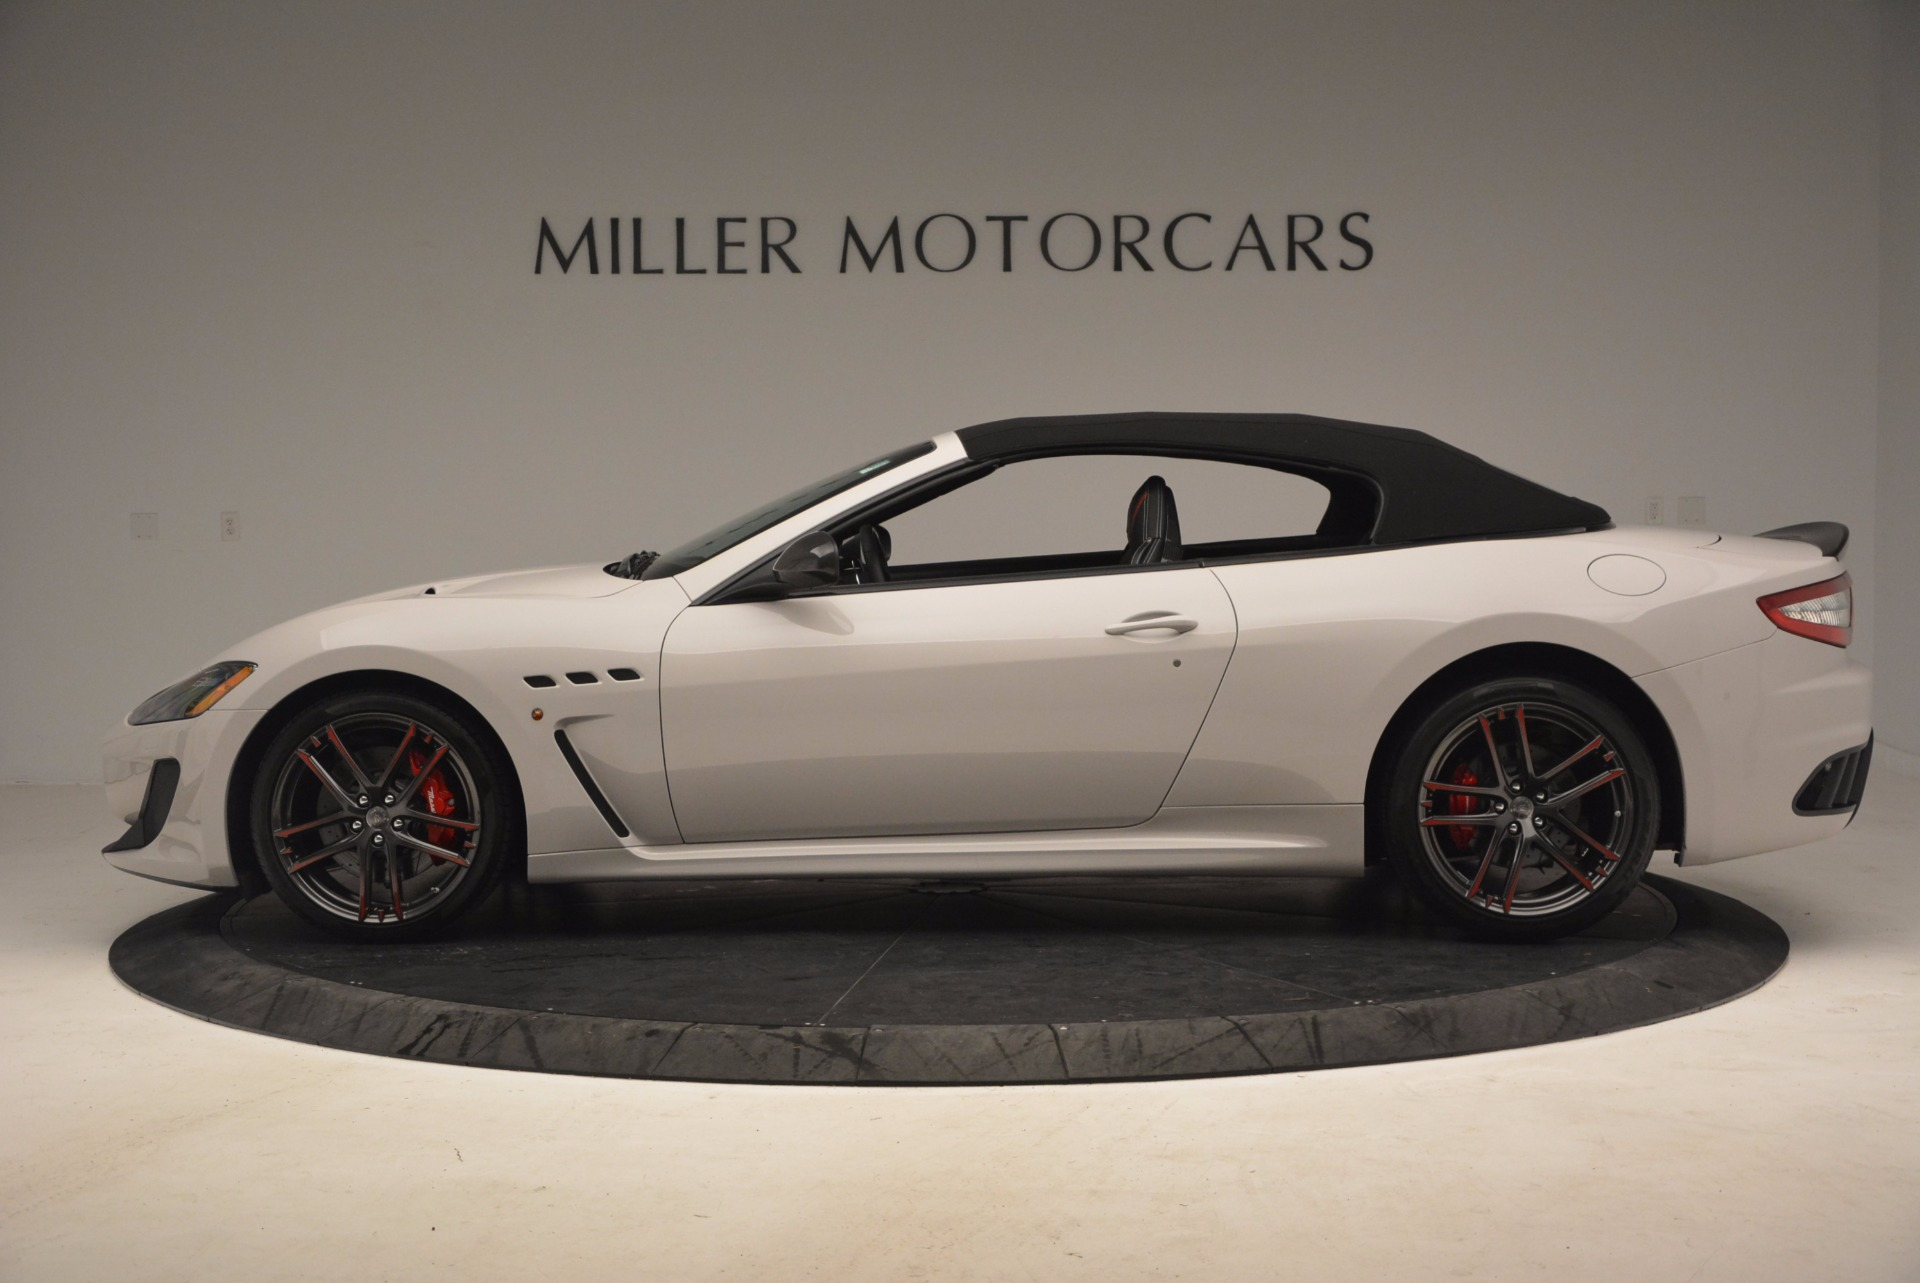 Used 2015 Maserati GranTurismo MC Centennial For Sale In Westport, CT 1107_p15